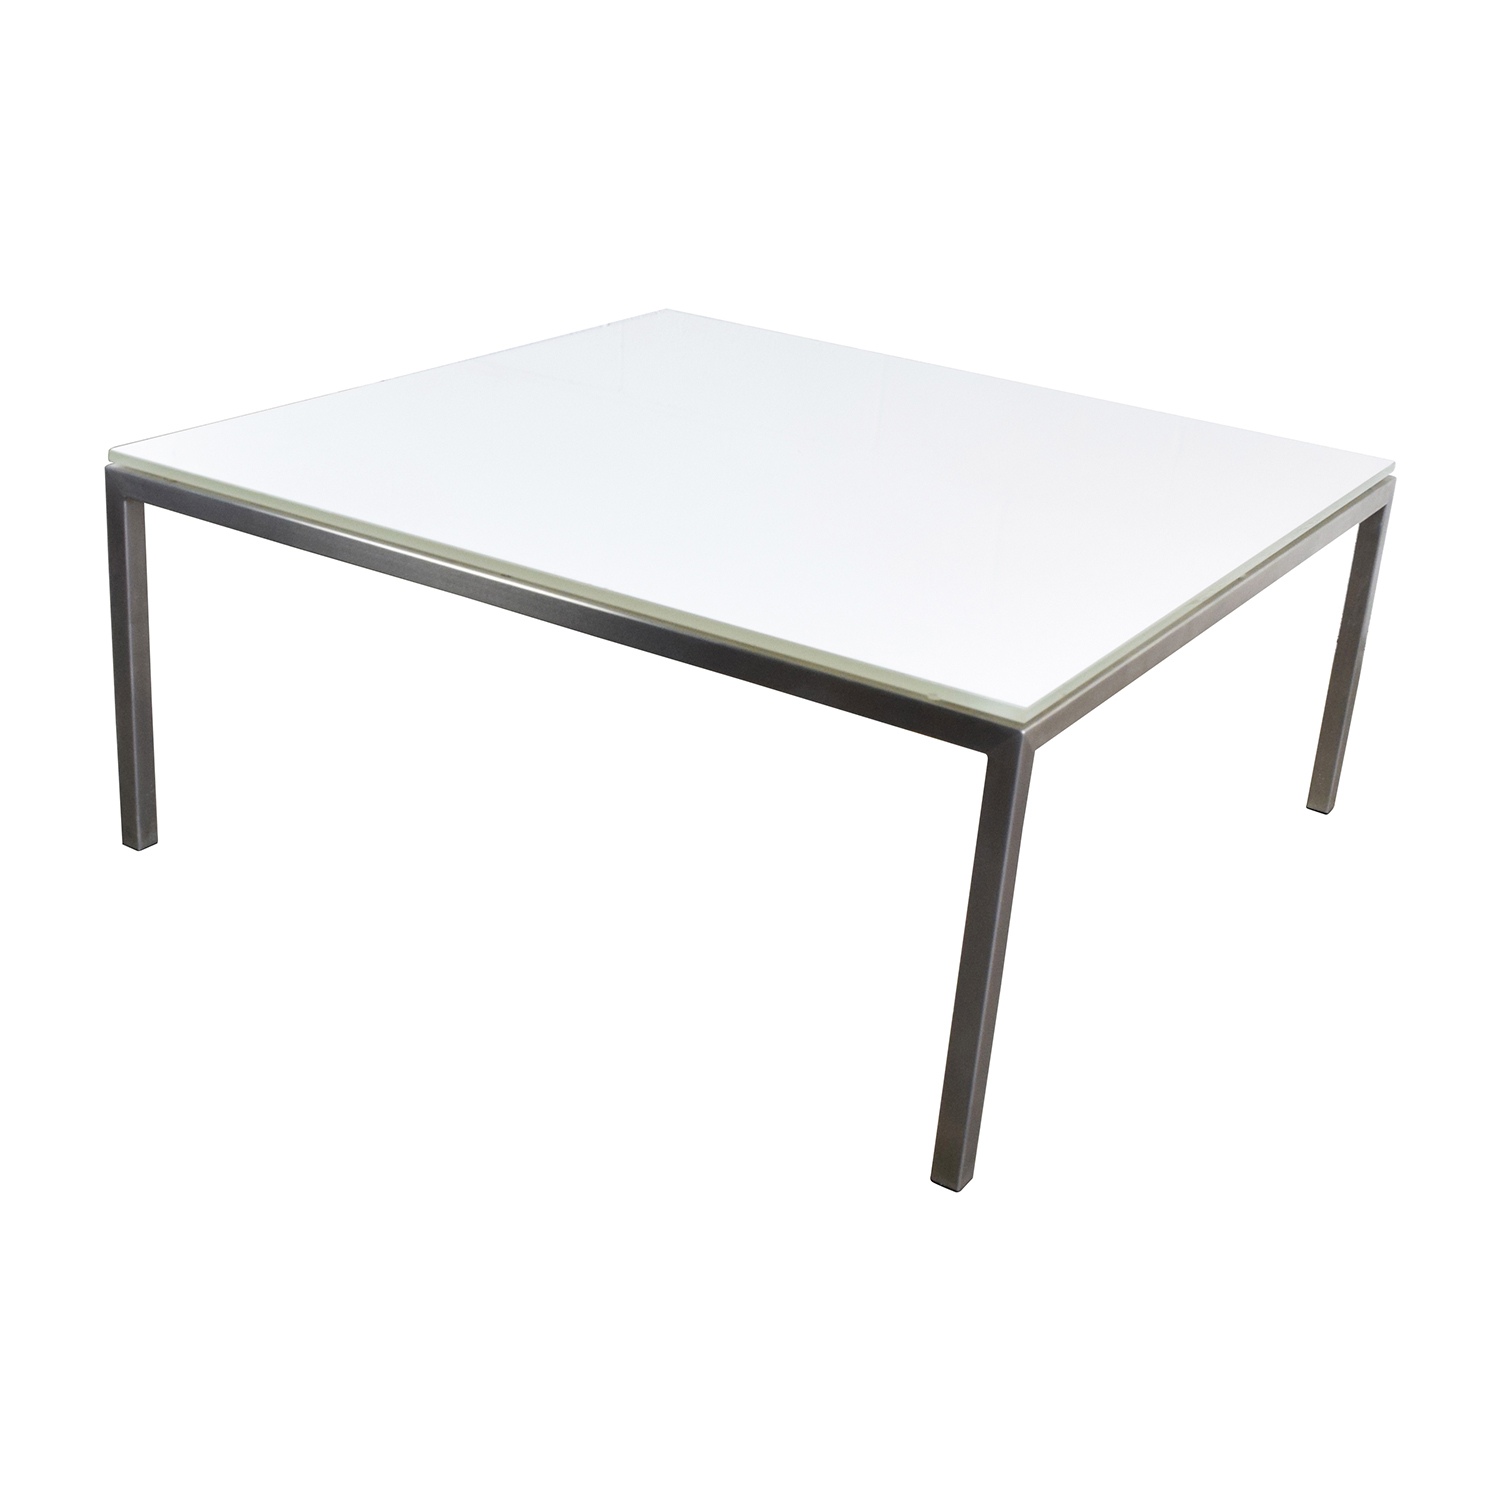 77 off portica portica white glass cocktail table tables Used glass coffee table